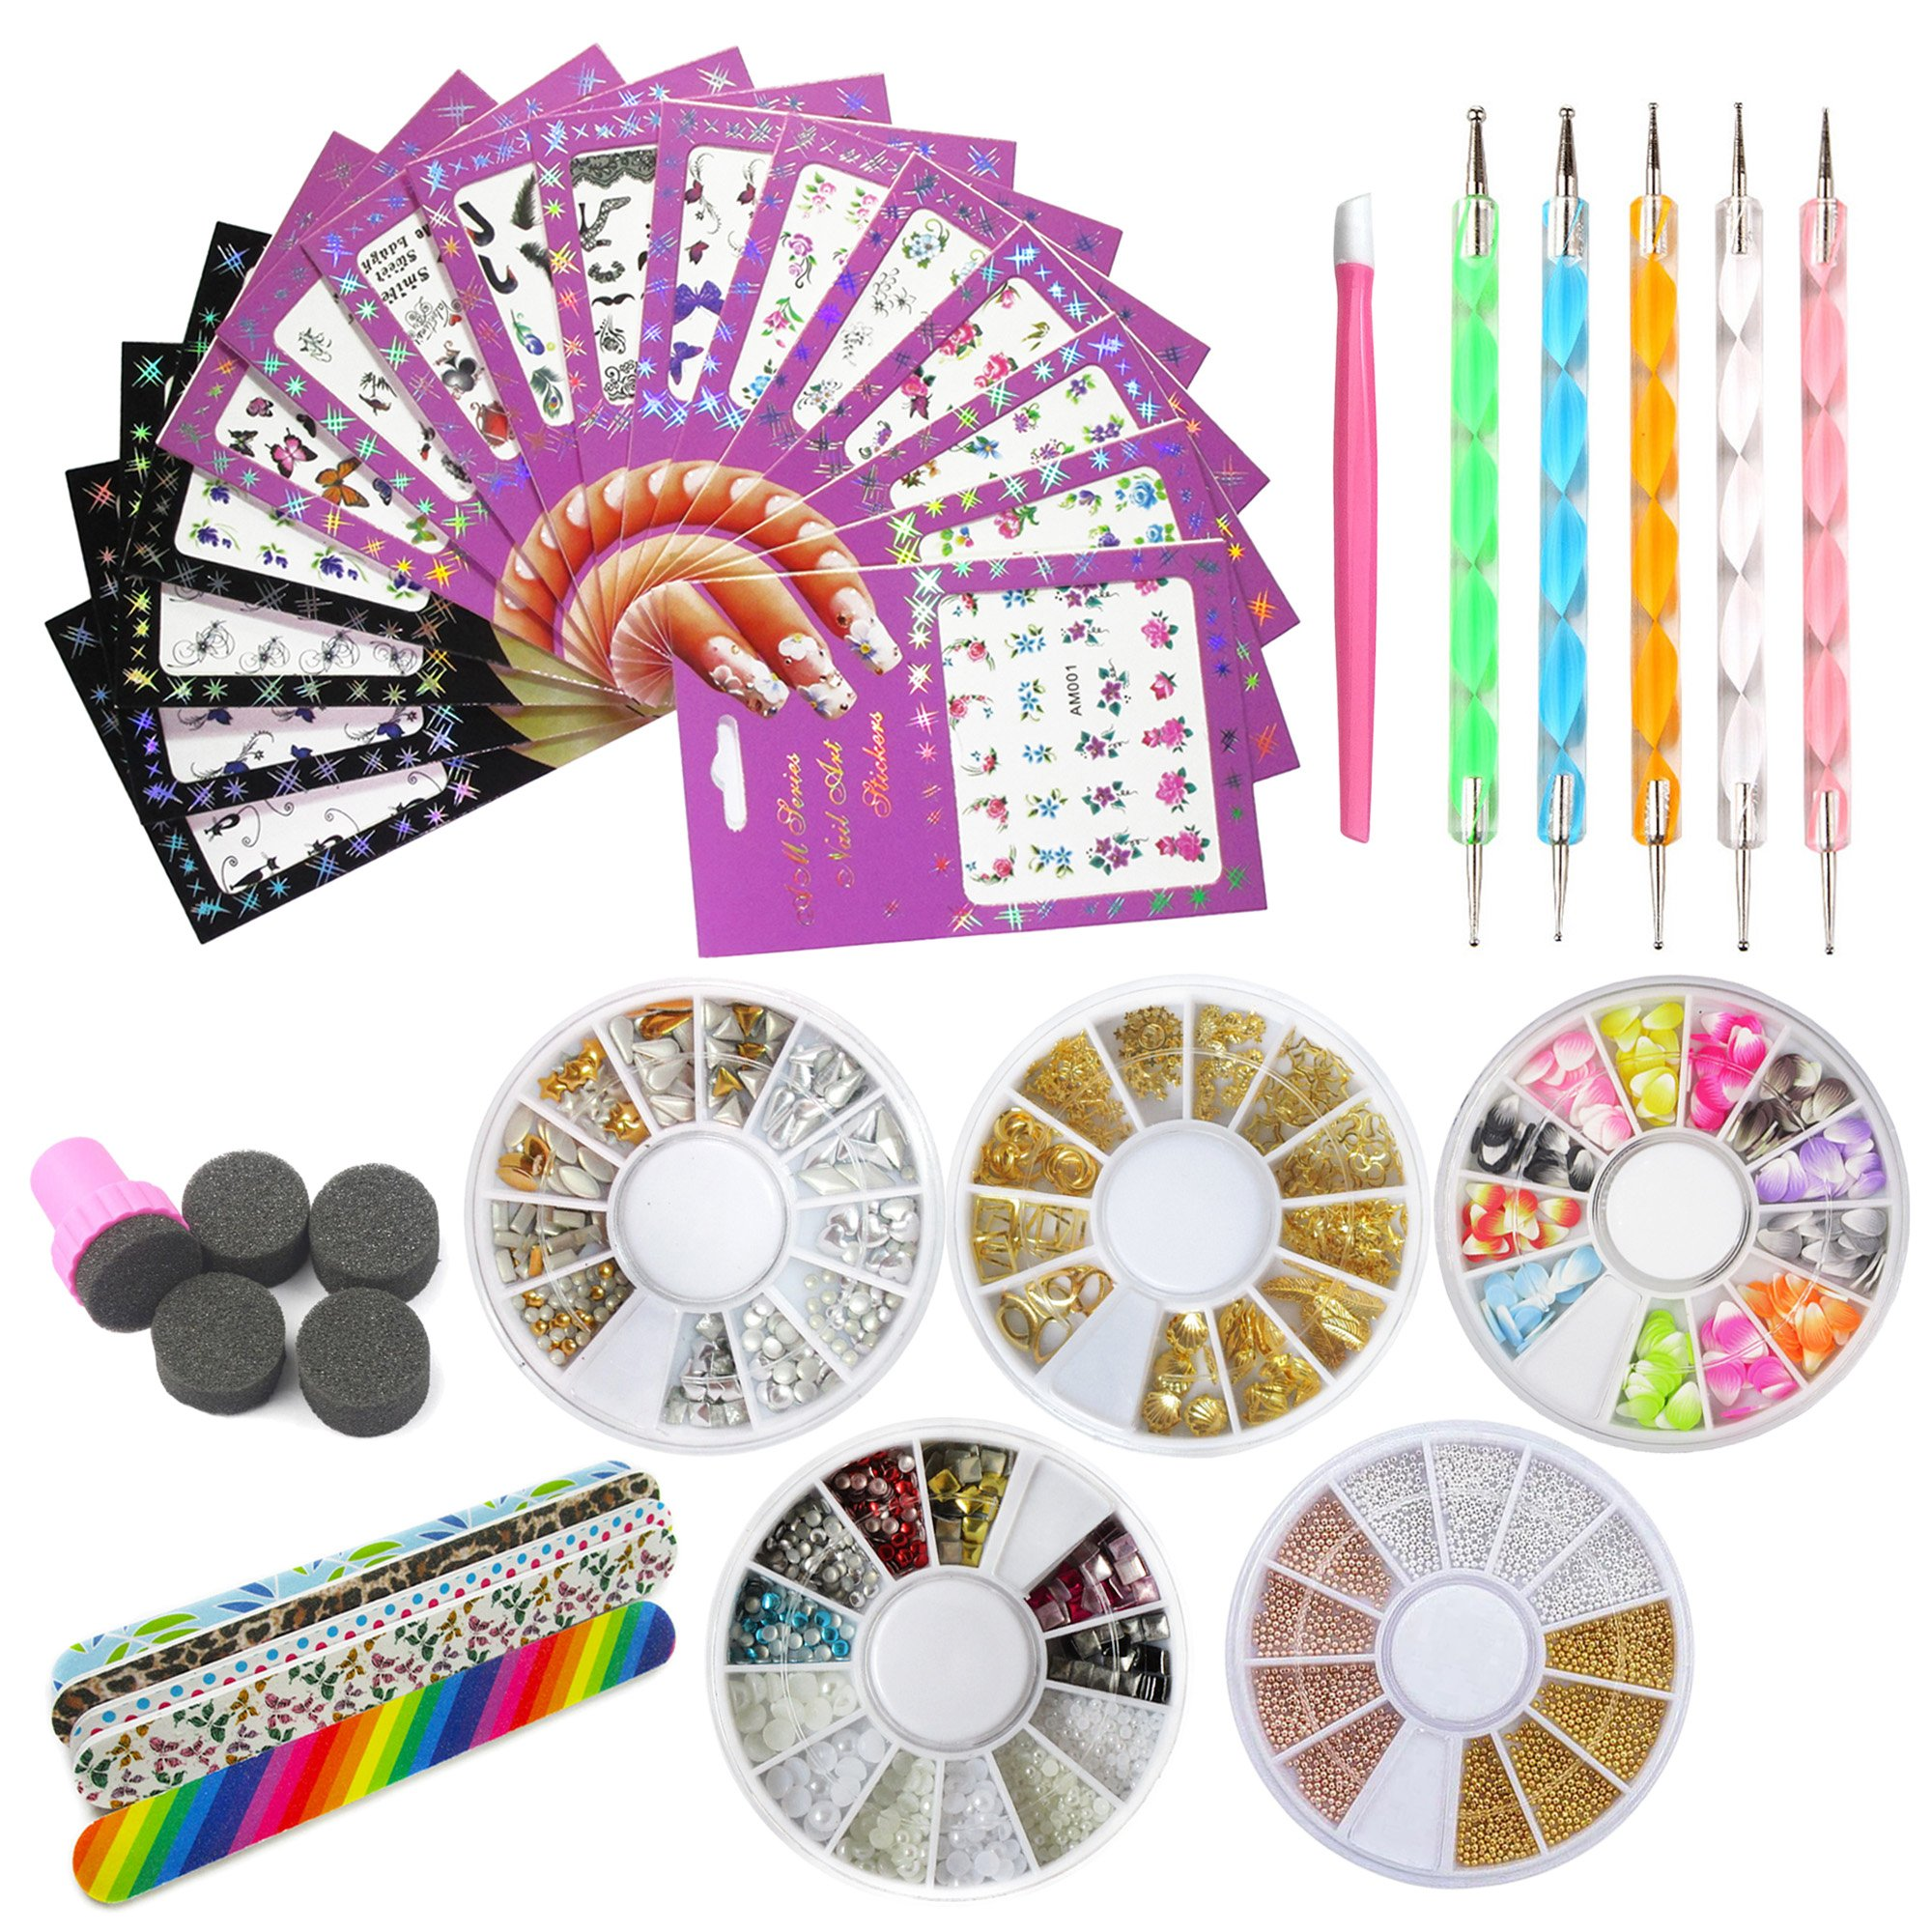 Nail Art Tools Decoration Manicure Pedicure Tool Set Kit 16PCS Nail Stickers,5 Boxes  Nail Beads Rhinestones Stone Gold Metal Studs,5 Nail File Sticks,5 Nail Dotting Pen,Nail Stamping Sponge Pusher